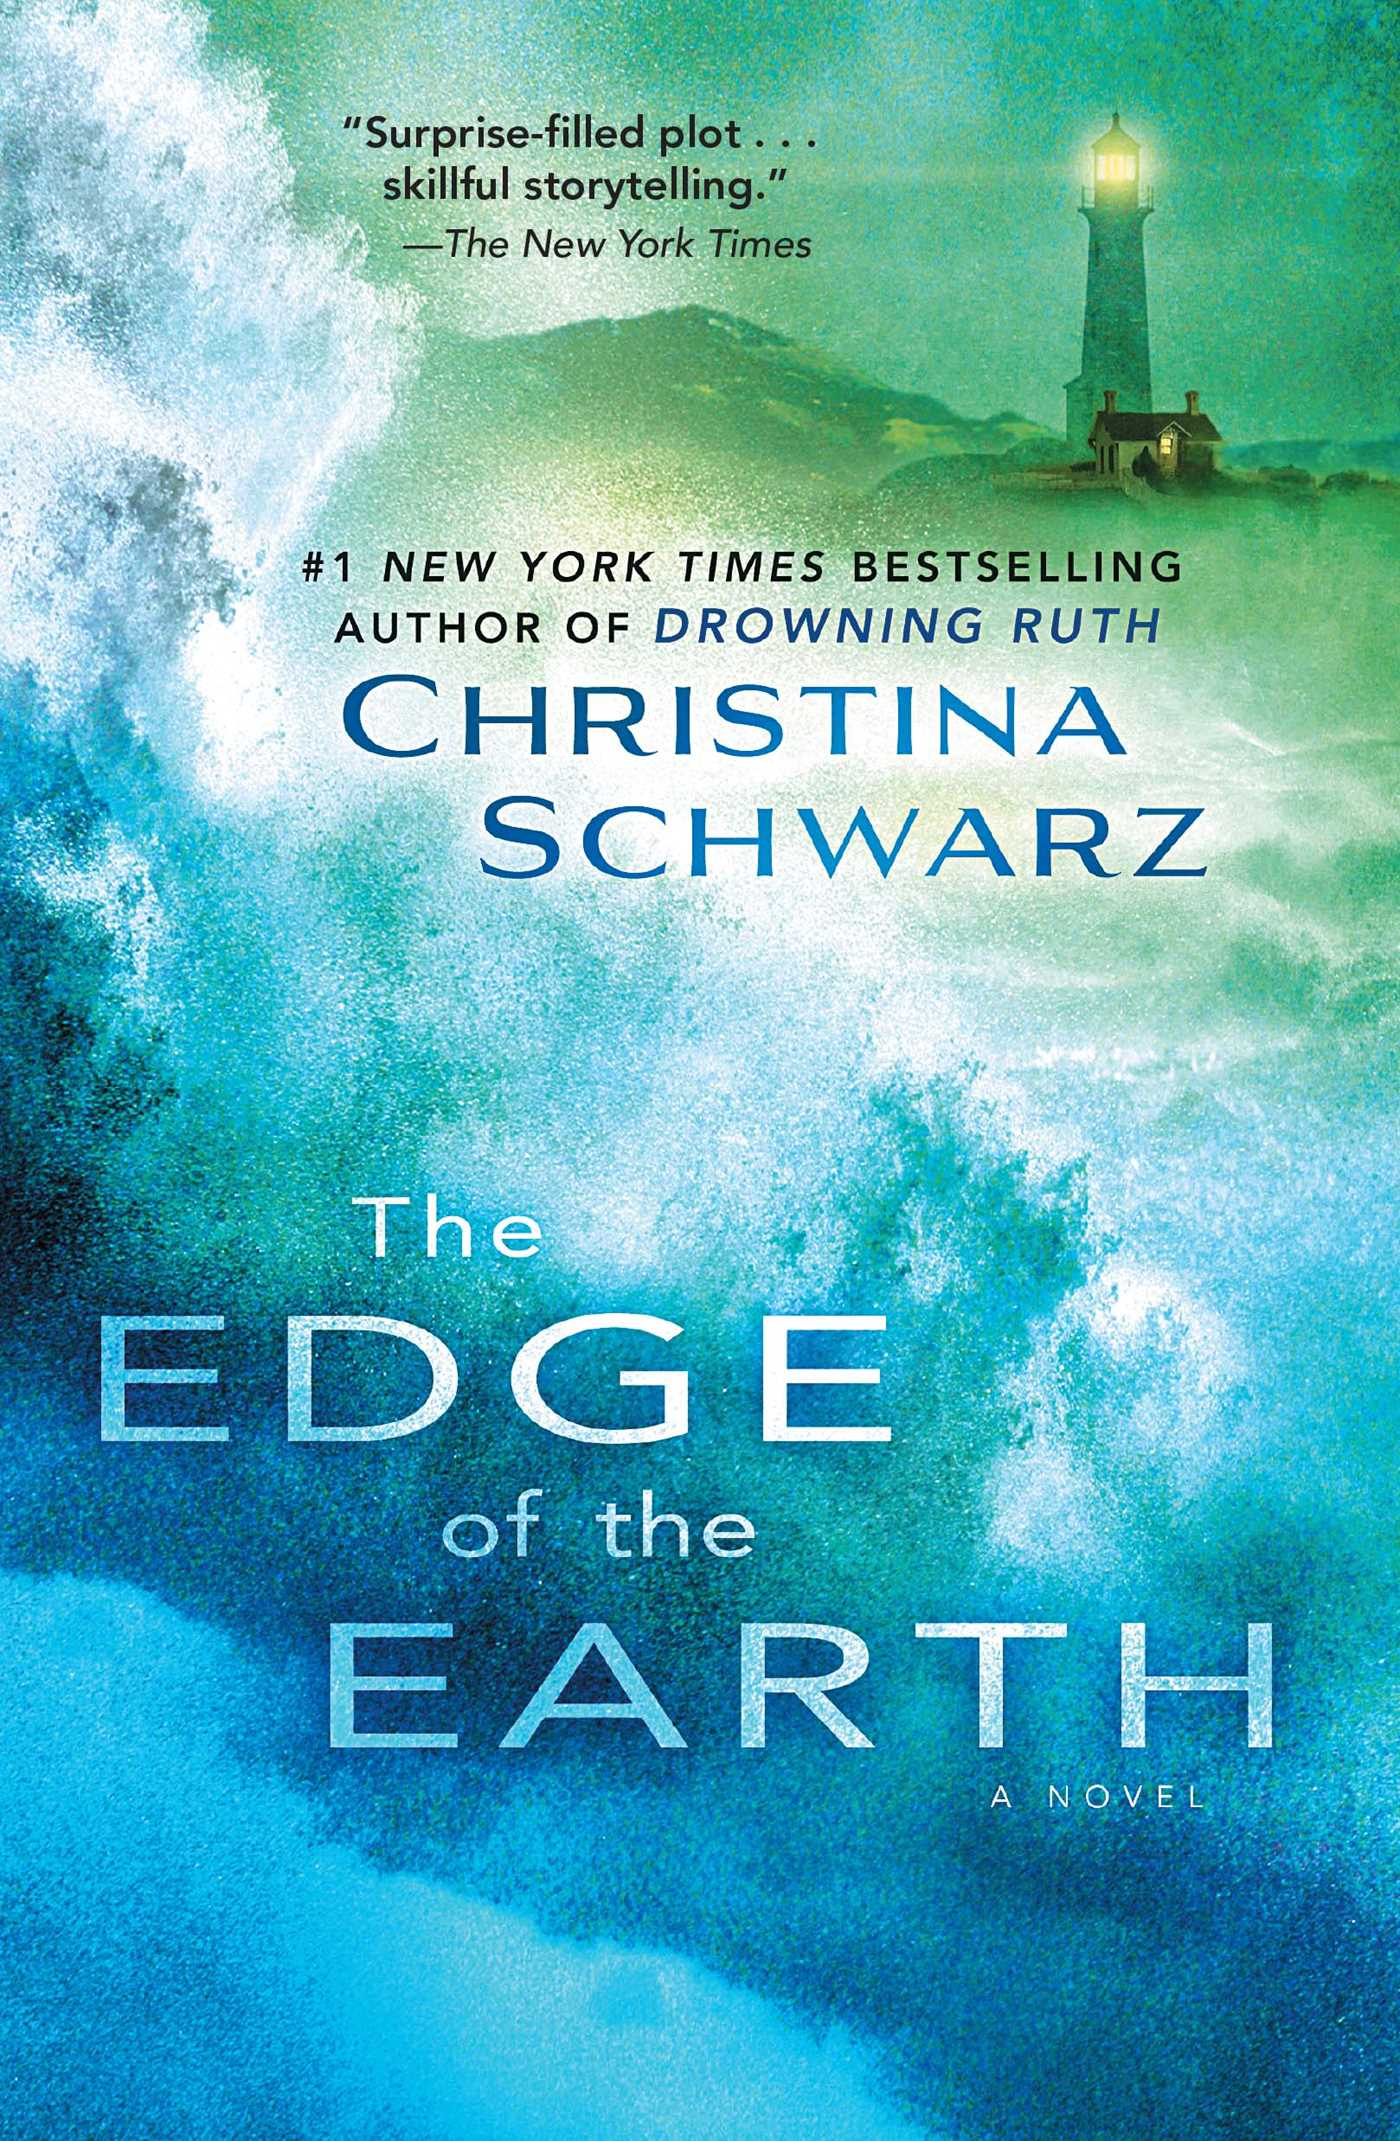 The edge of the earth 9781451683721 hr